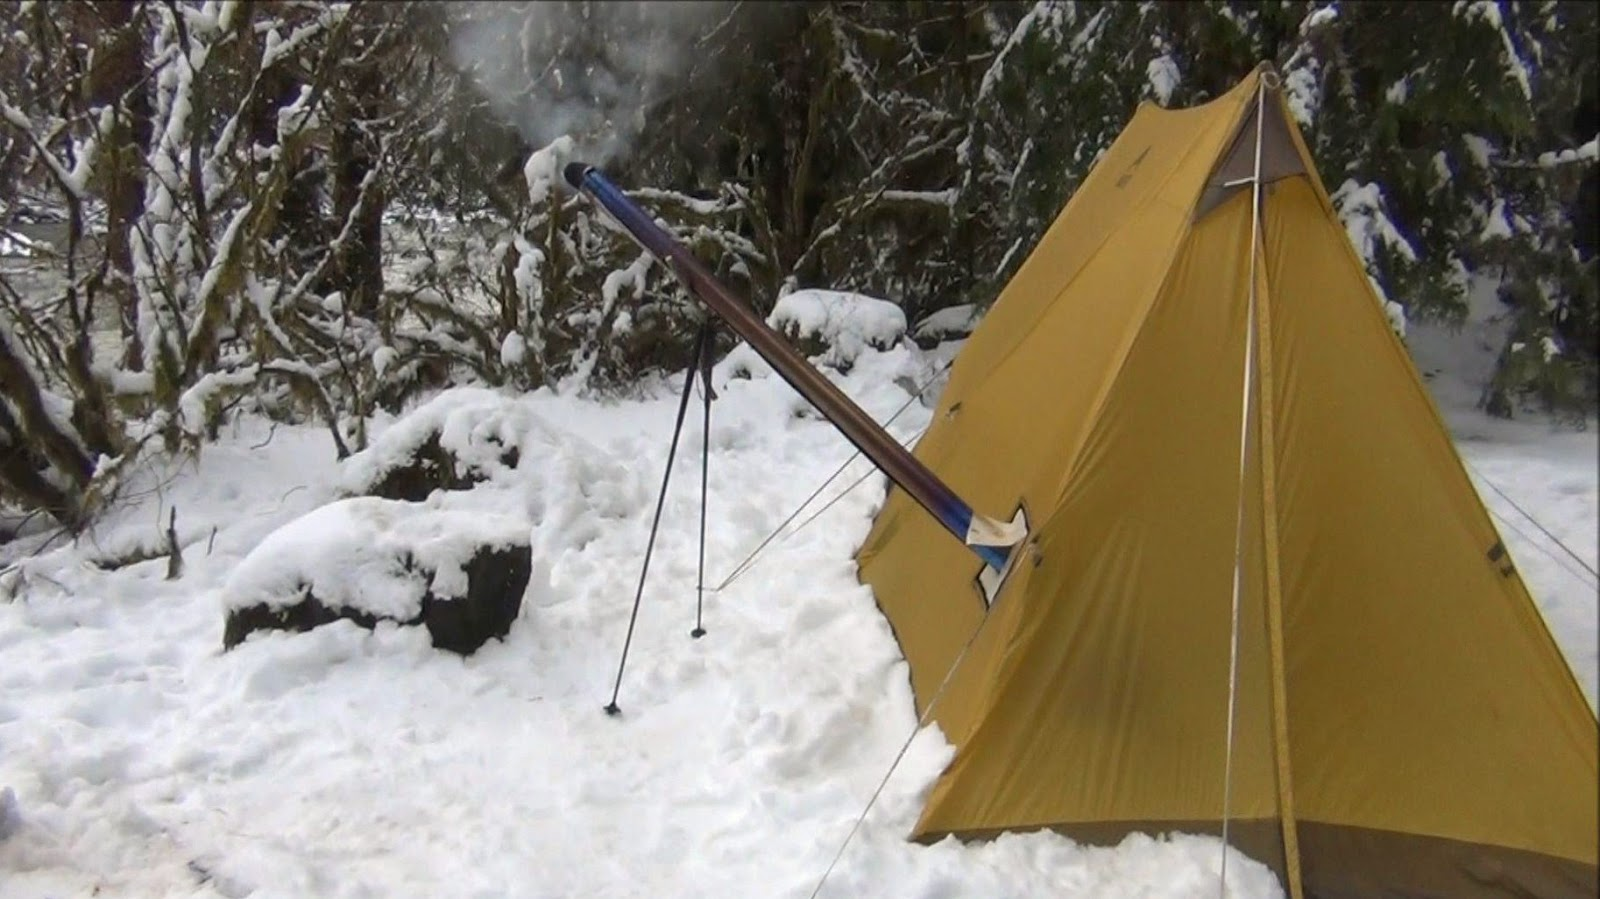 Wawhiker Backpacking Hot Tenting With Wood Stove Winter